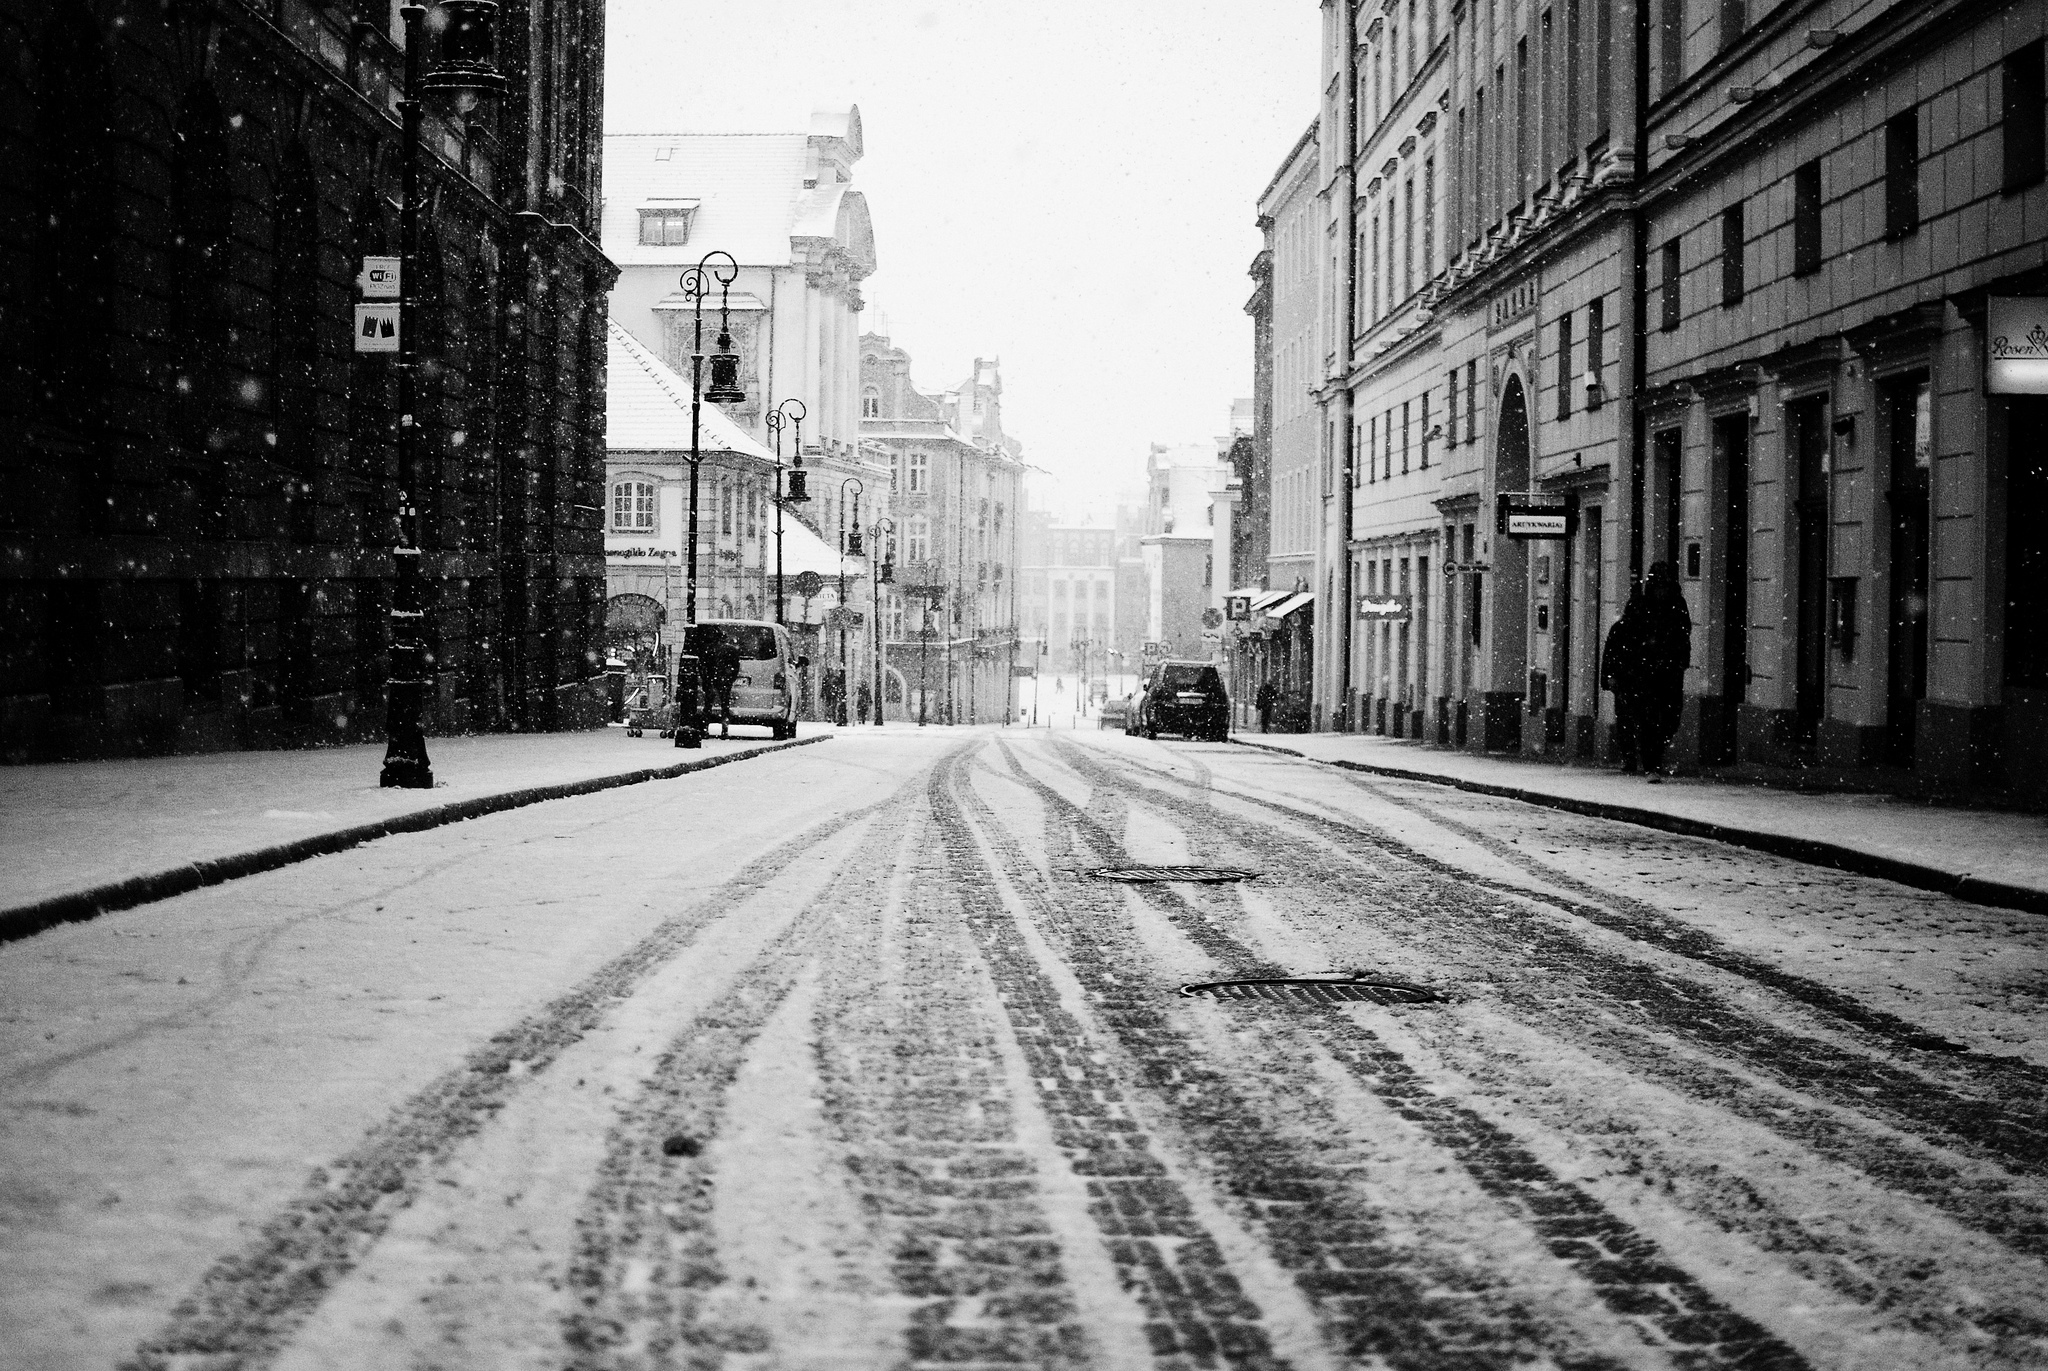 City Road Snow Street Buildings Houses People Cars Tracks Winter Black White Wallpaper